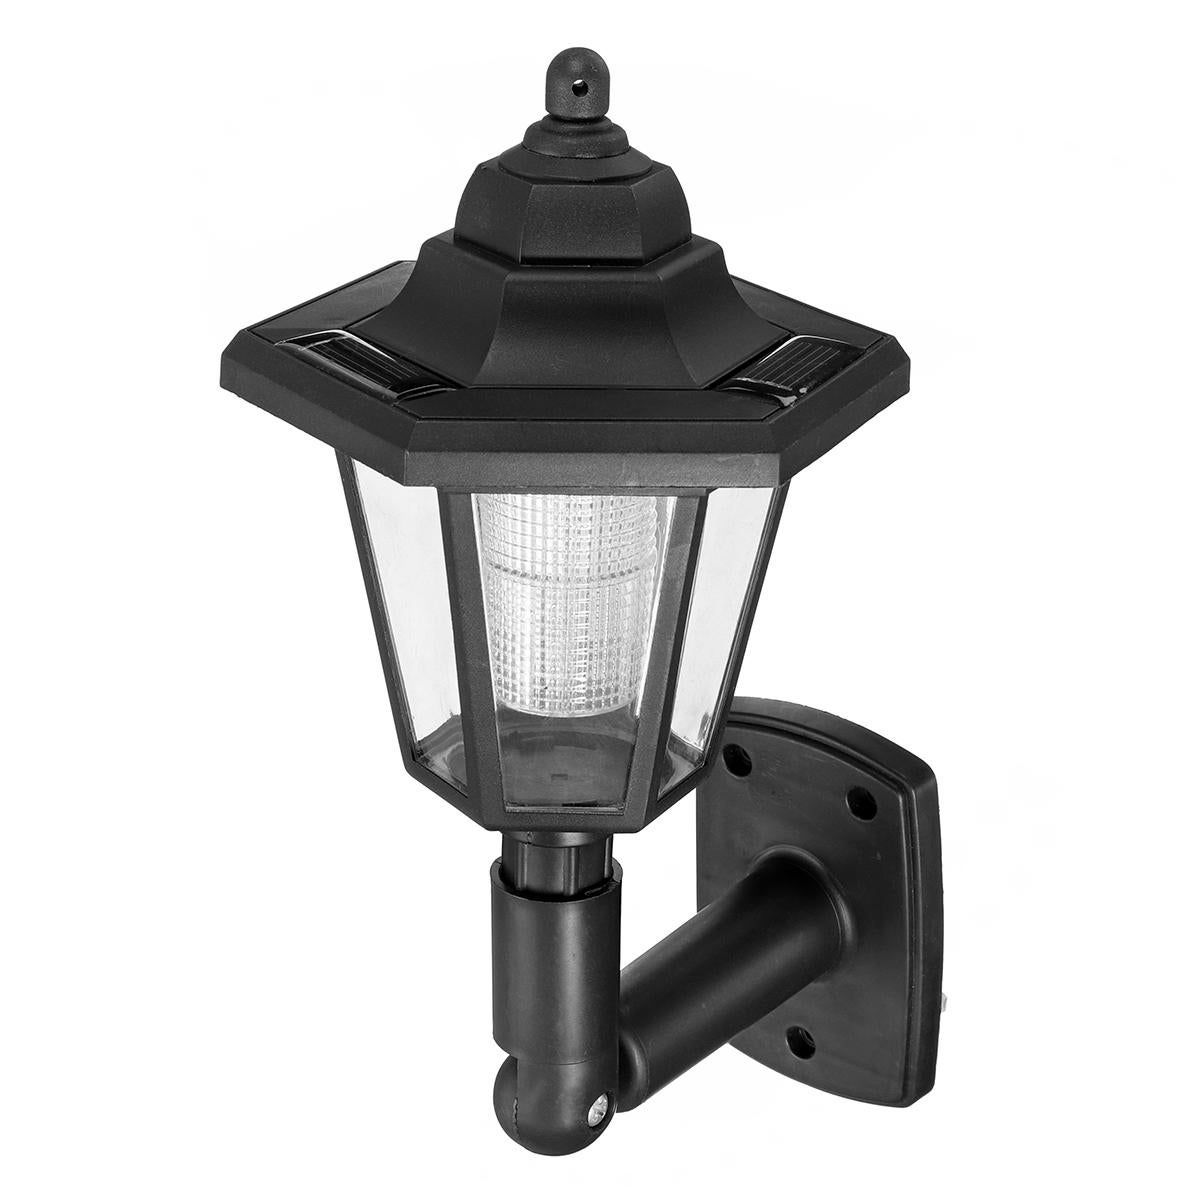 Outdoor Garden LED Solar Power Path Wall Light Lawn Landscape Security Lamp